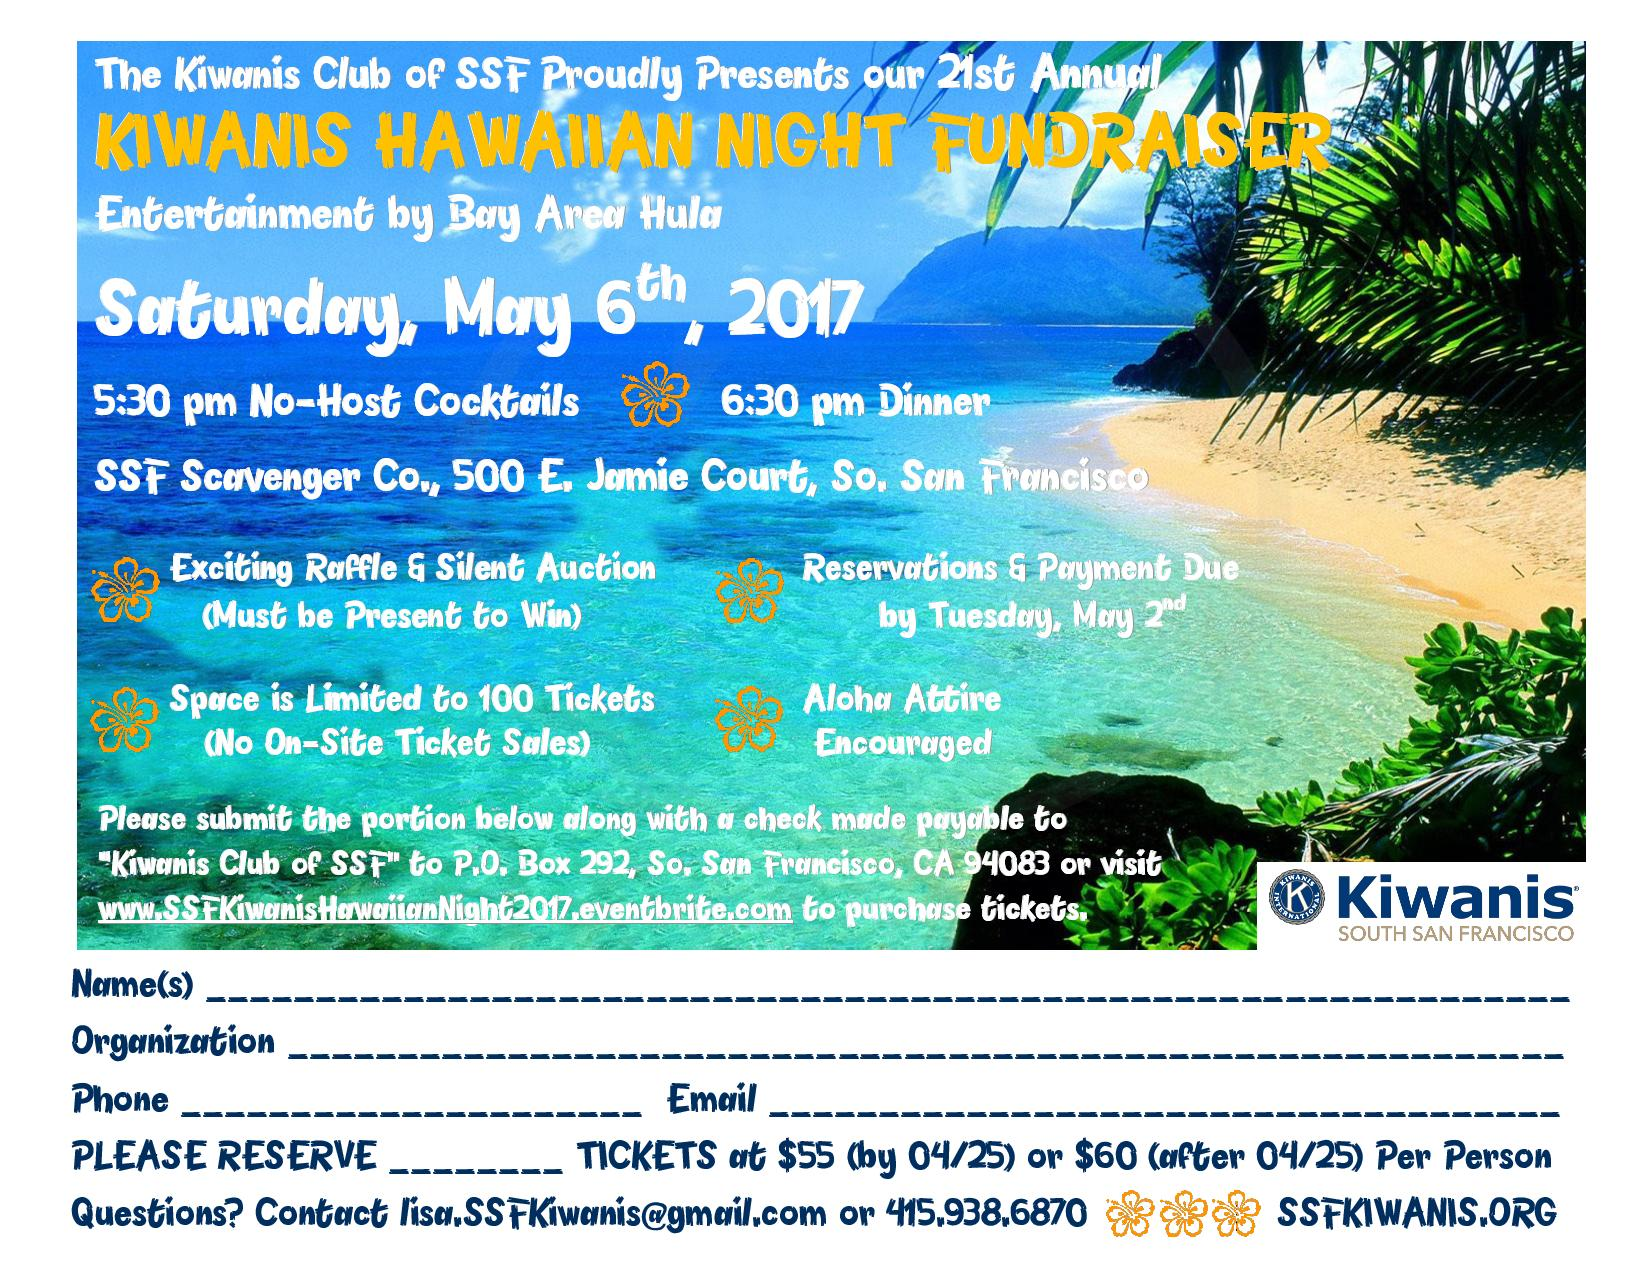 Kiwanis Club of SSF Hawaiian Night Fundraiser 05/06